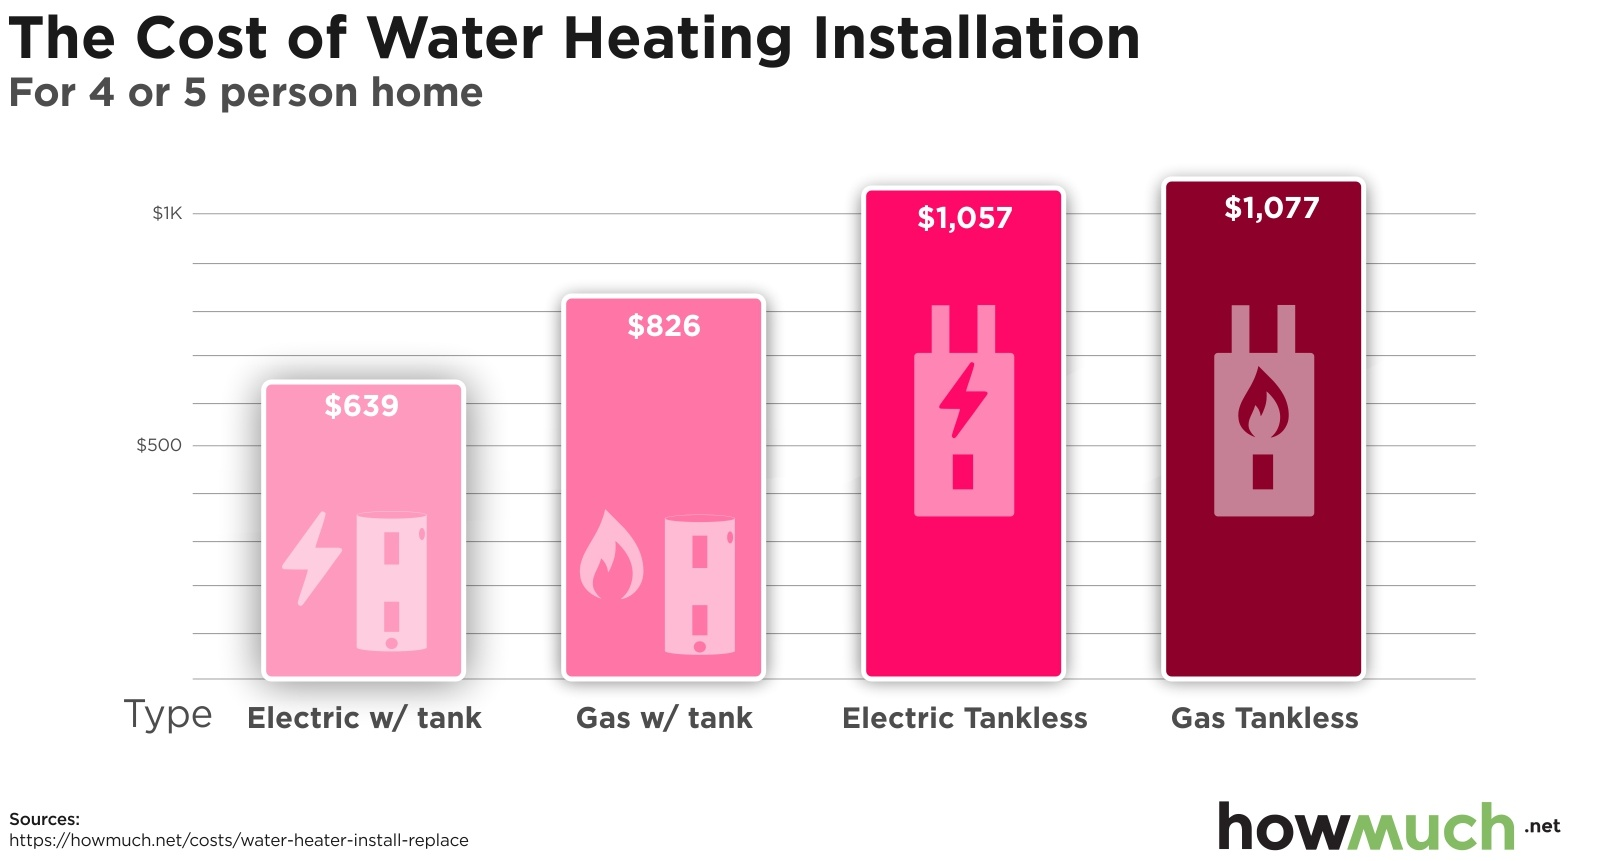 The Cost of Water Heating Installation